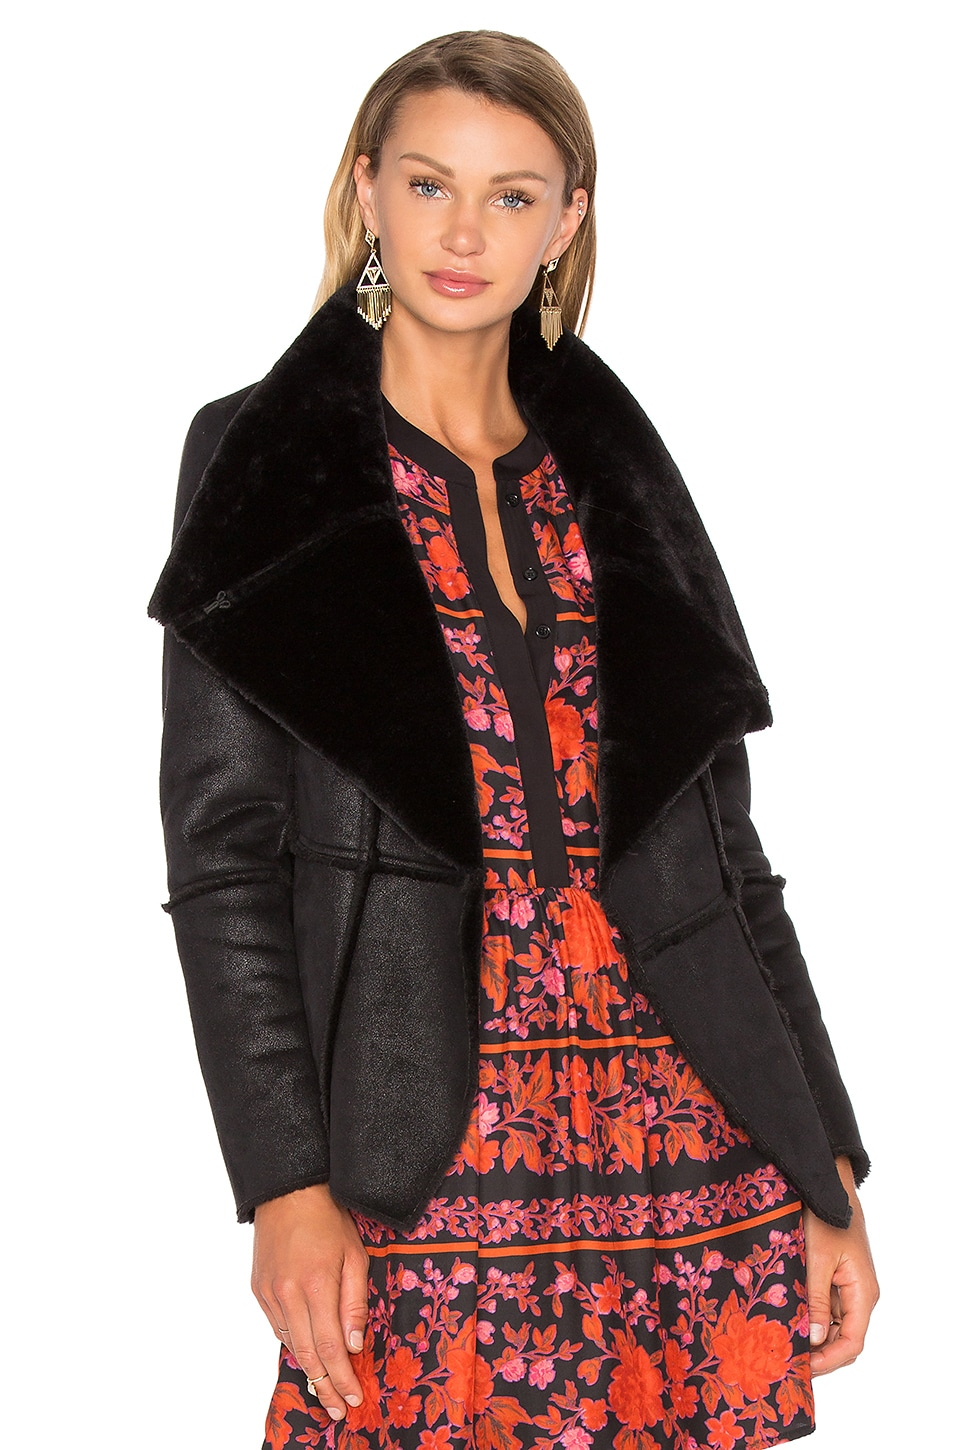 Rivina Jacket with Faux Fur by cupcakes and cashmere